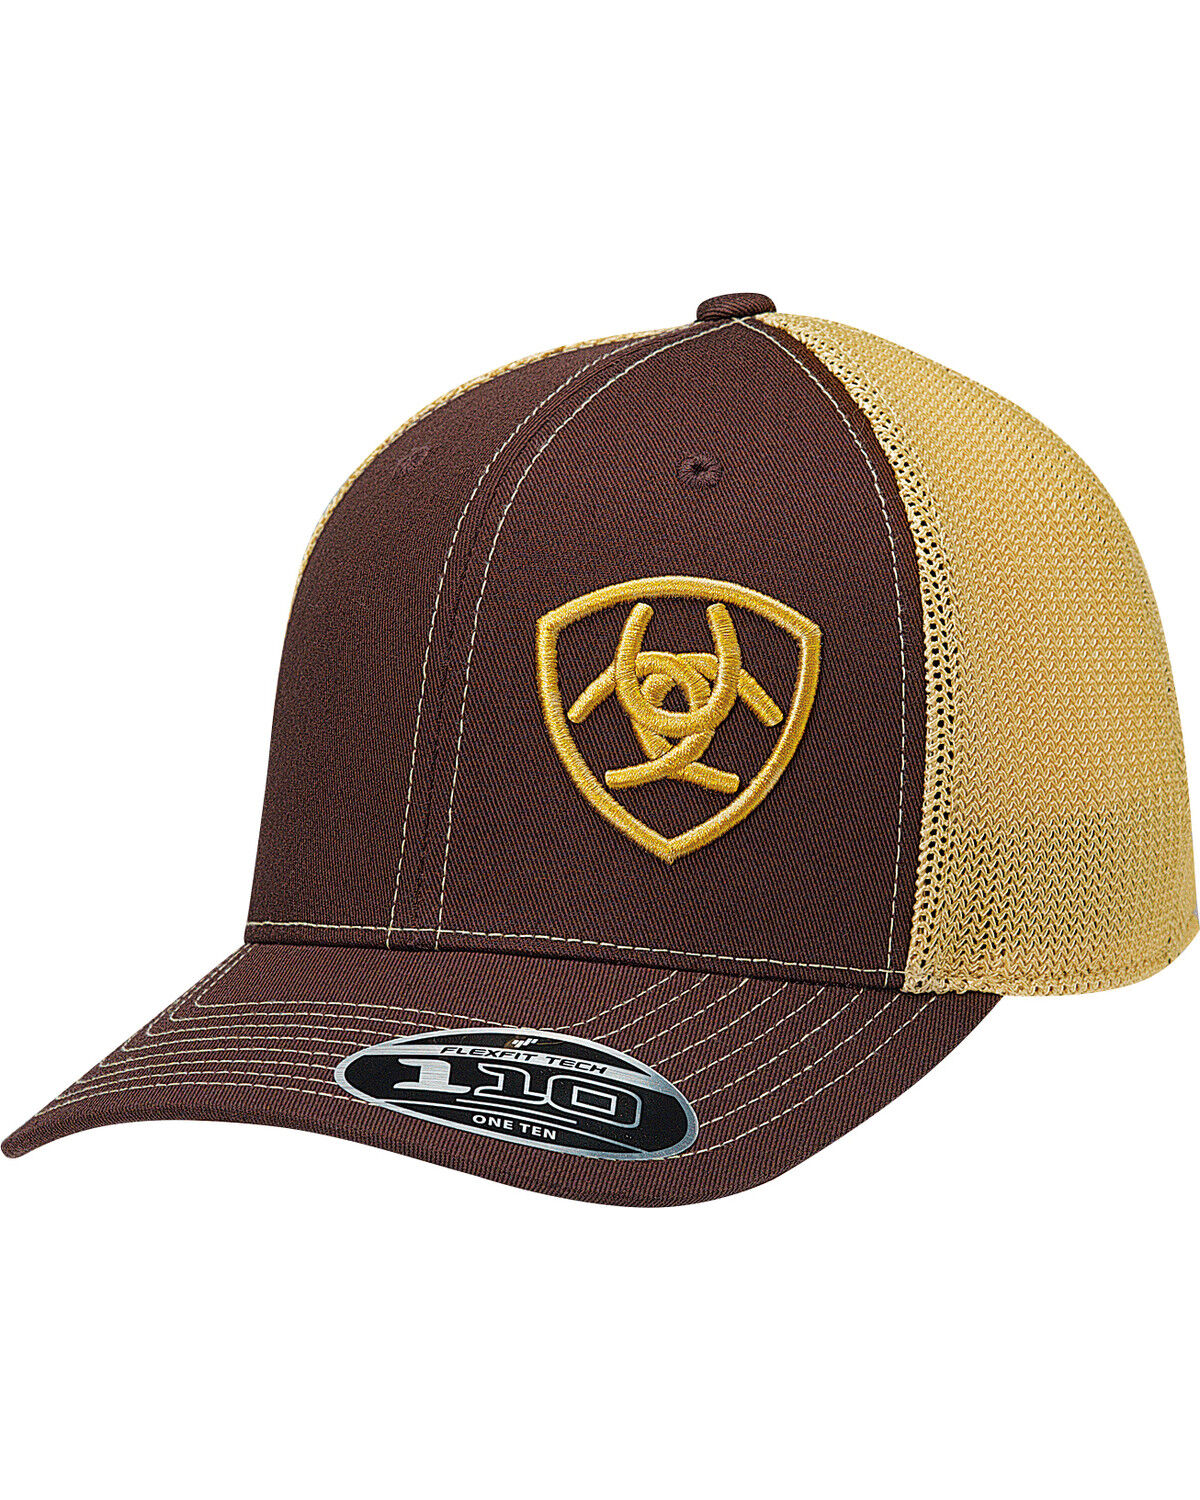 ecf9b2c4f0c ... sale ariat mens brown large offset shield baseball cap brown hi res  c5bab b8b87